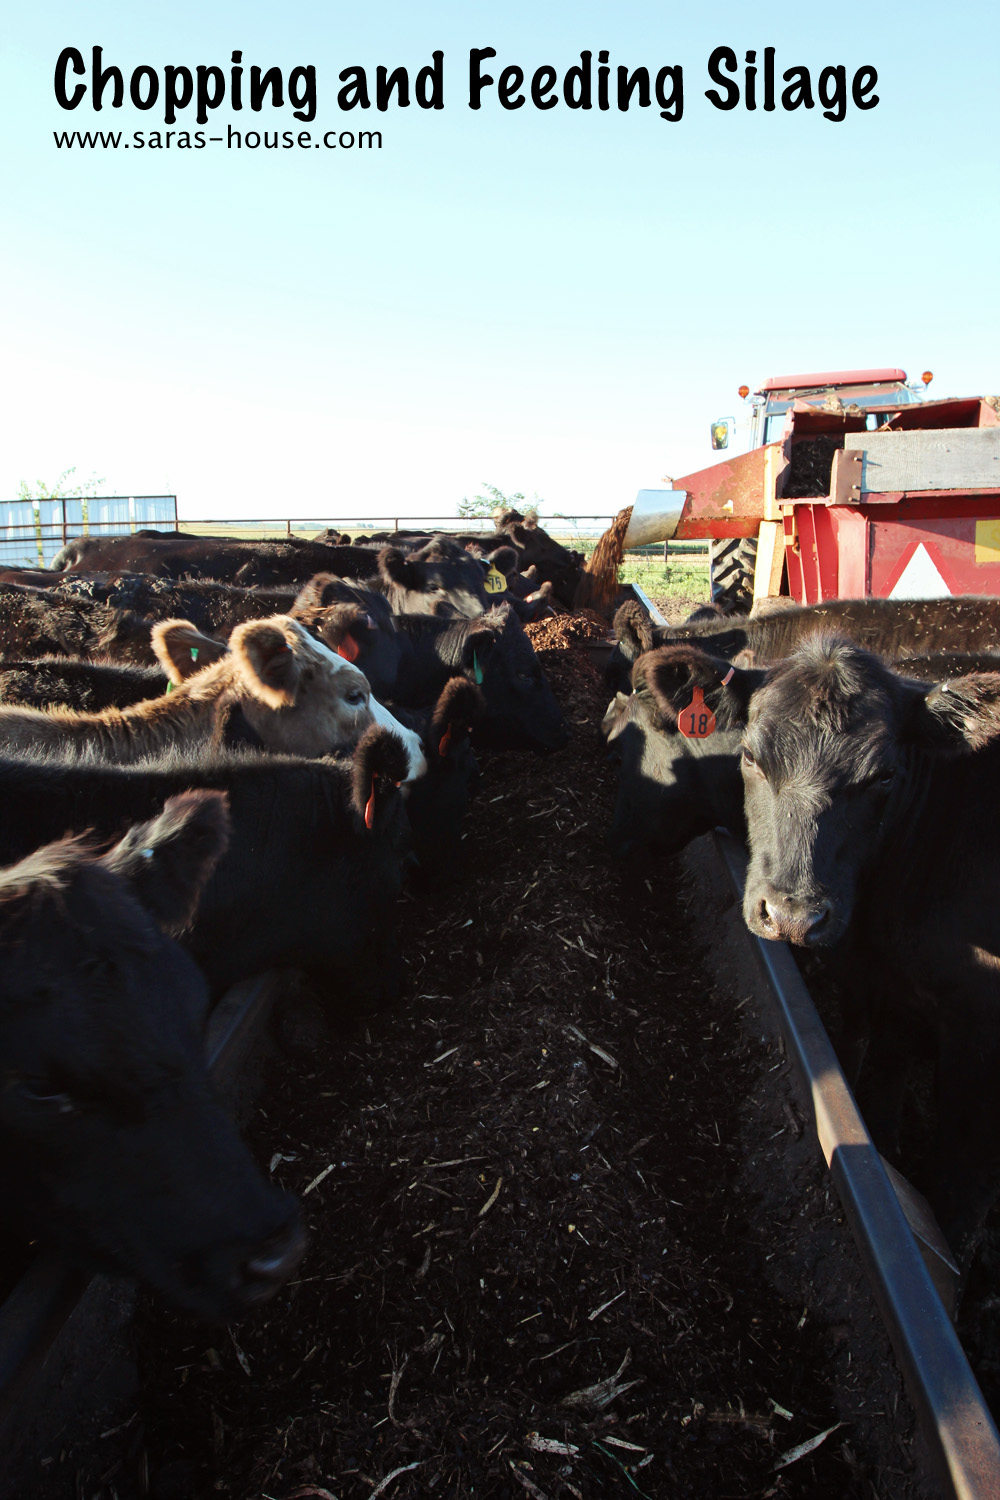 Chopping and Feeding Silage to our Cattle